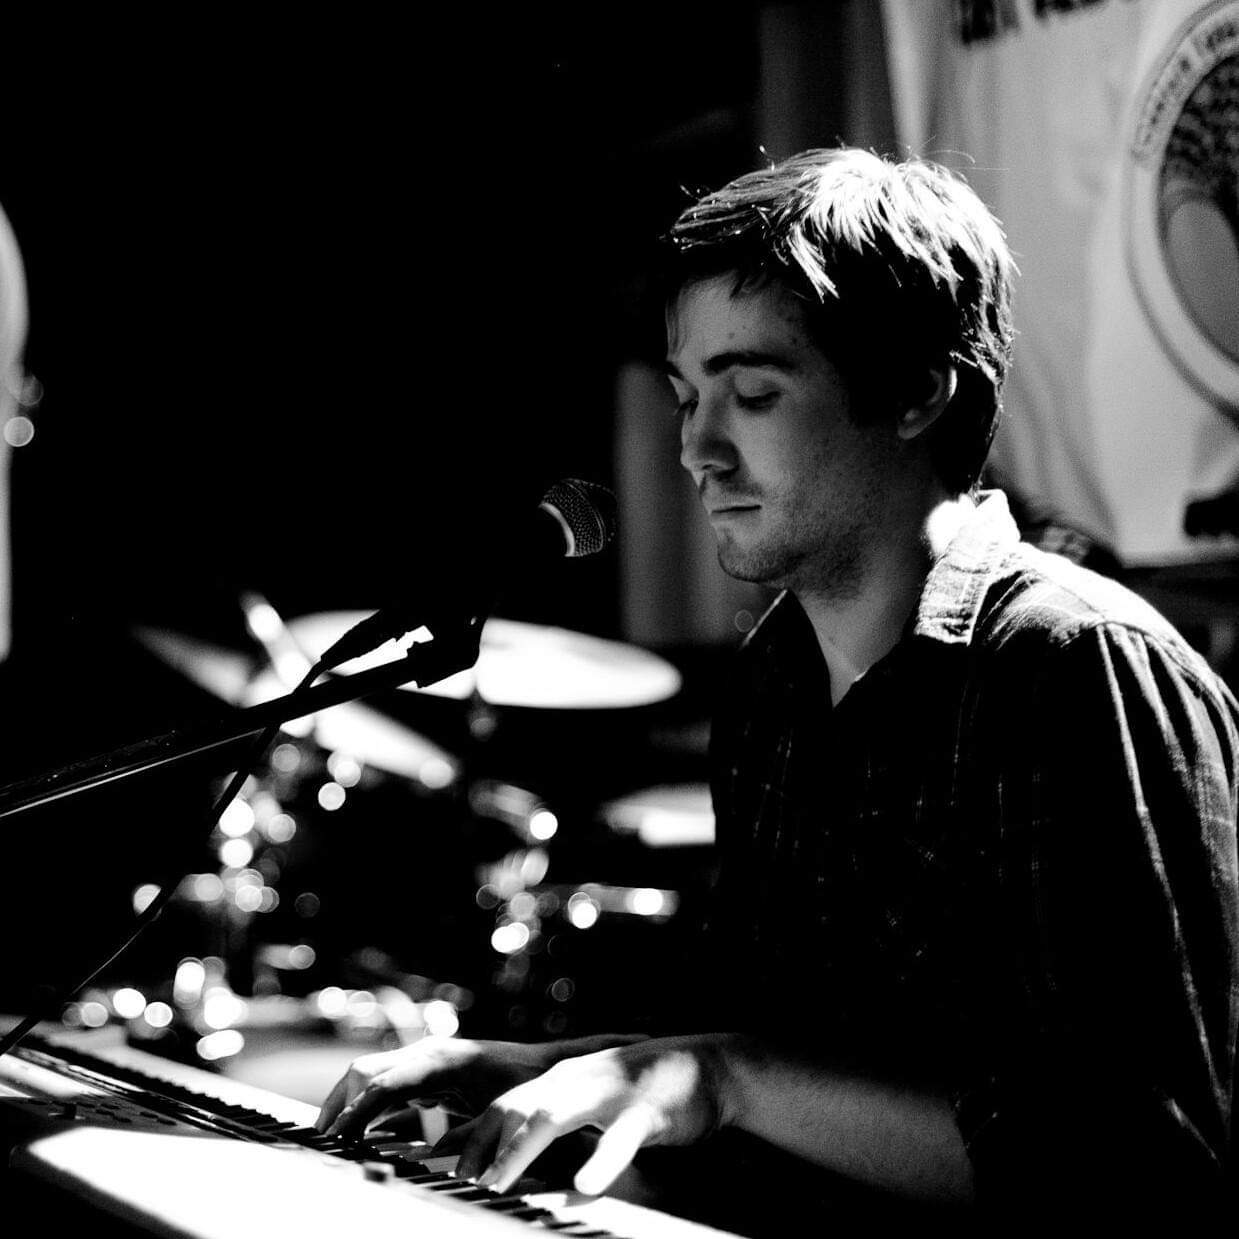 Jake Towe - Jake Towe started playing music at five years old. He played piano, joined concert band, learned guitar and eventually studied music in college. His show is based on customer requests with genres ranging from jazz to hip hop to rock and country. Jake writes music as well and will throw a few original tunes throughout his performance.You can find his music on Spotify and band camp.